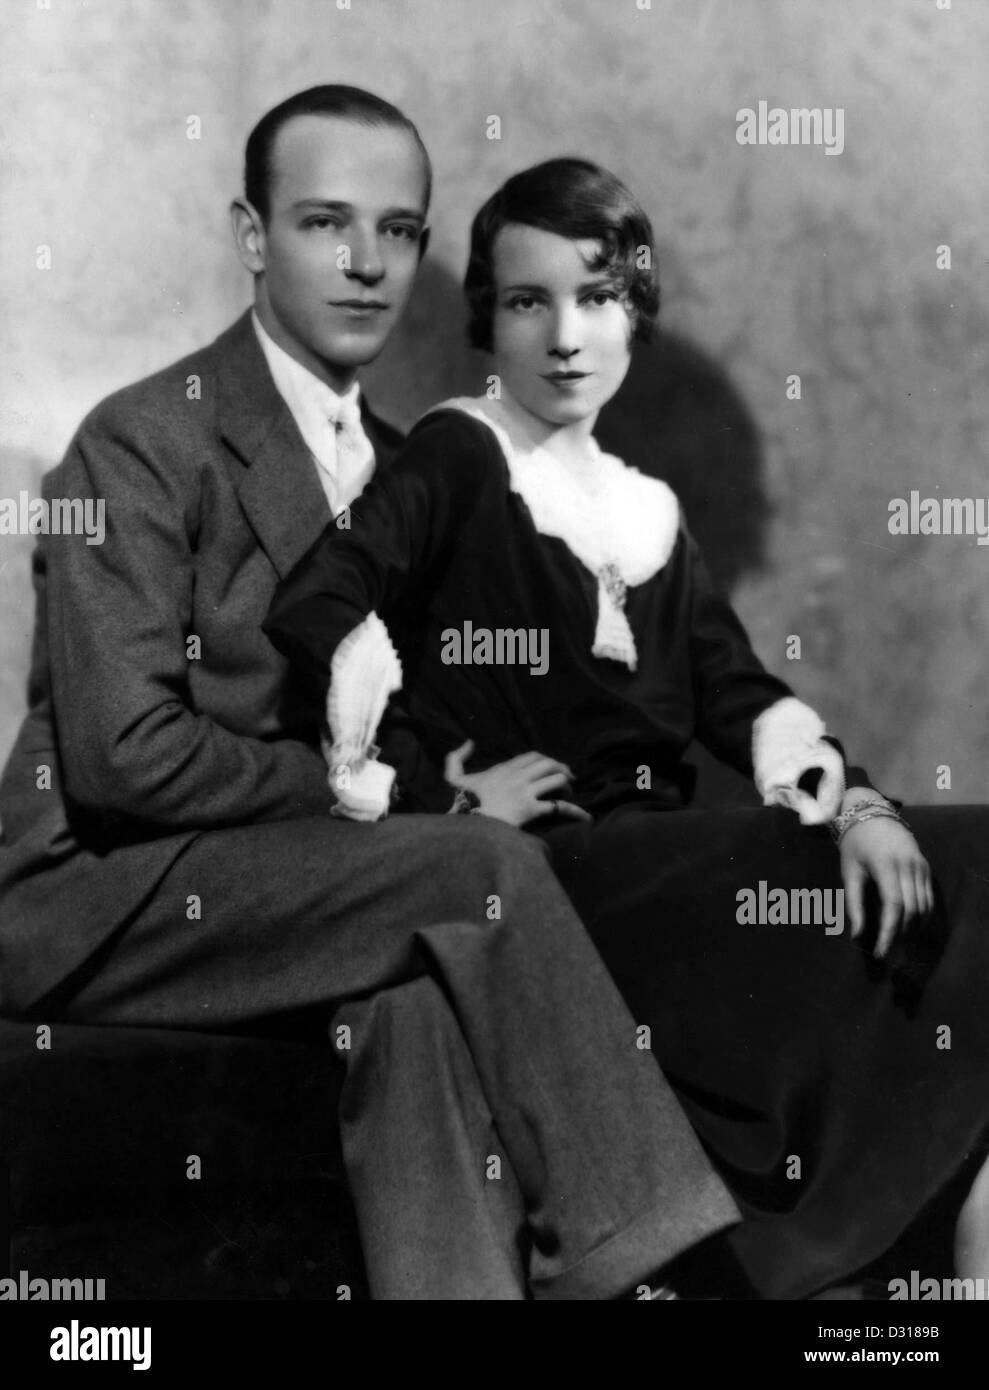 Fred Astaire, Adele Astaire - Stock Image